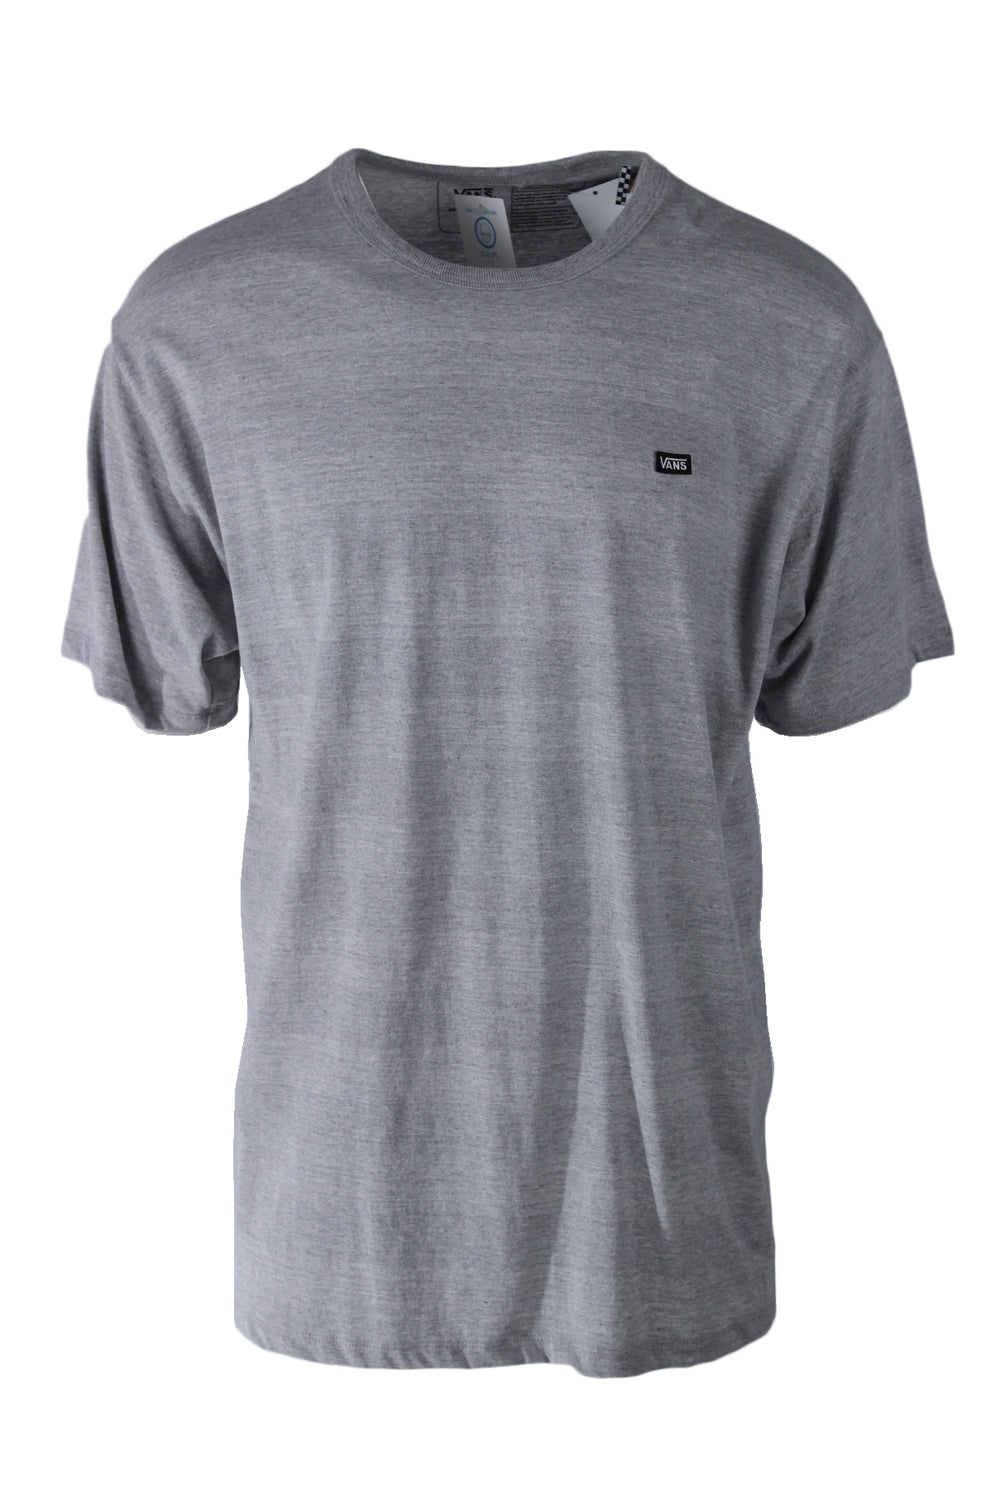 vans grey t-shirt. features 'vans' logo patch at left breast with subtle horizontal stripes throughout.